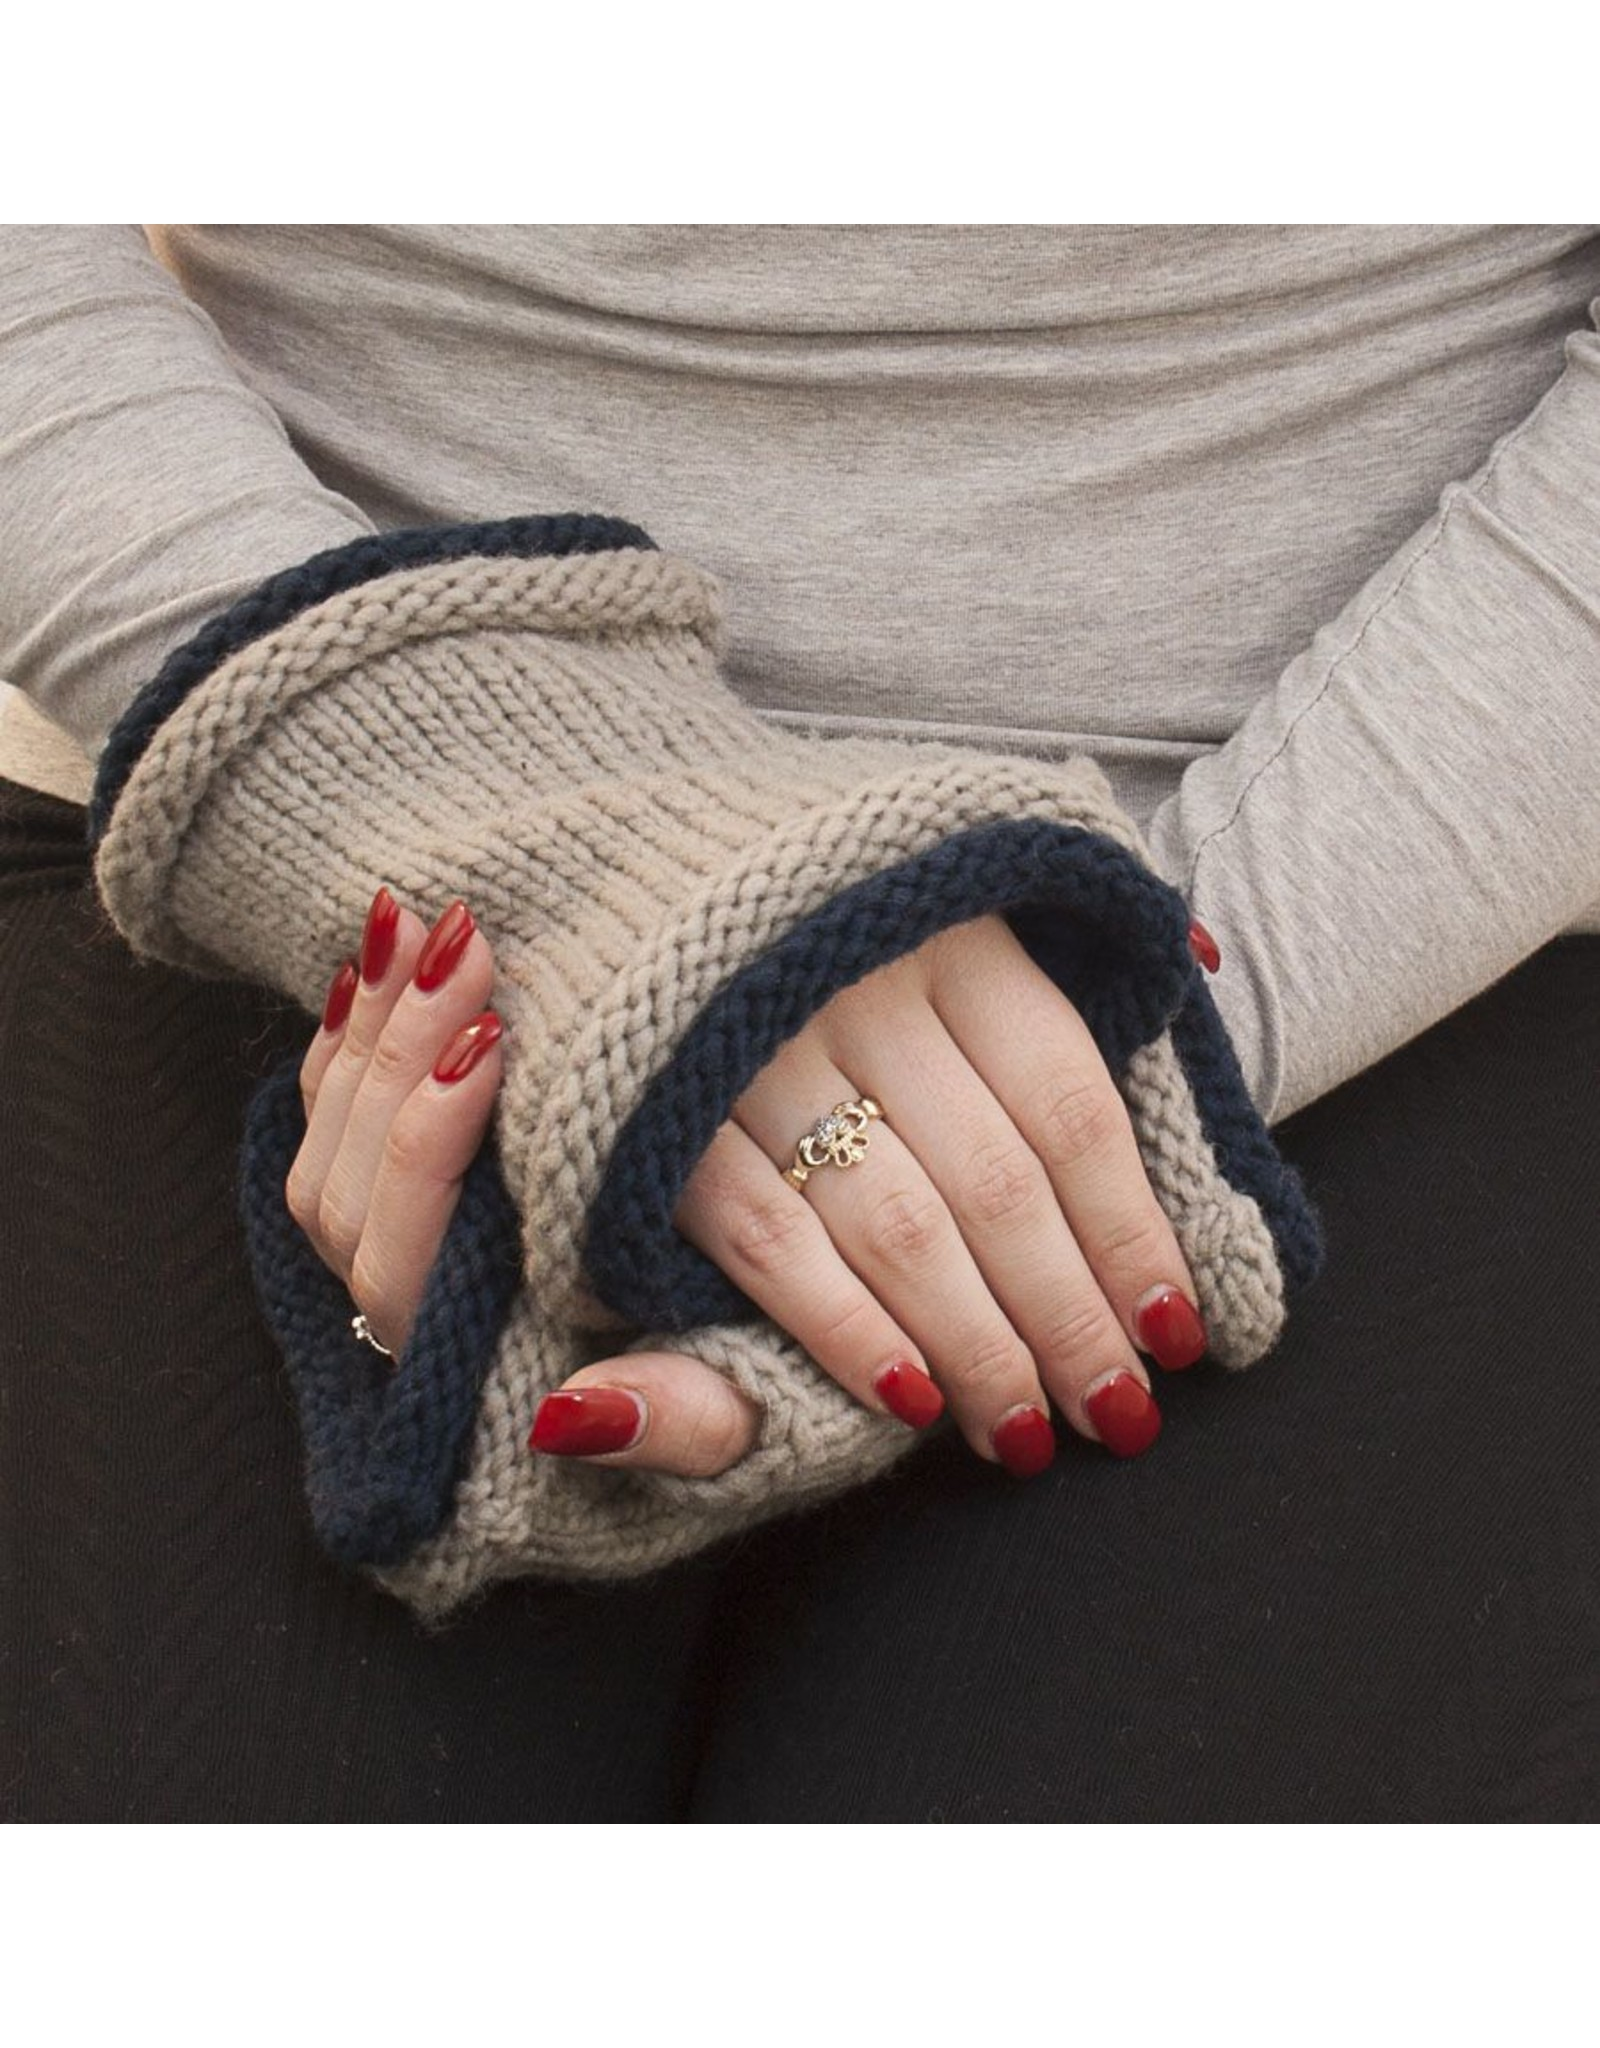 The Sweater Venture 2 Layer Wristlets